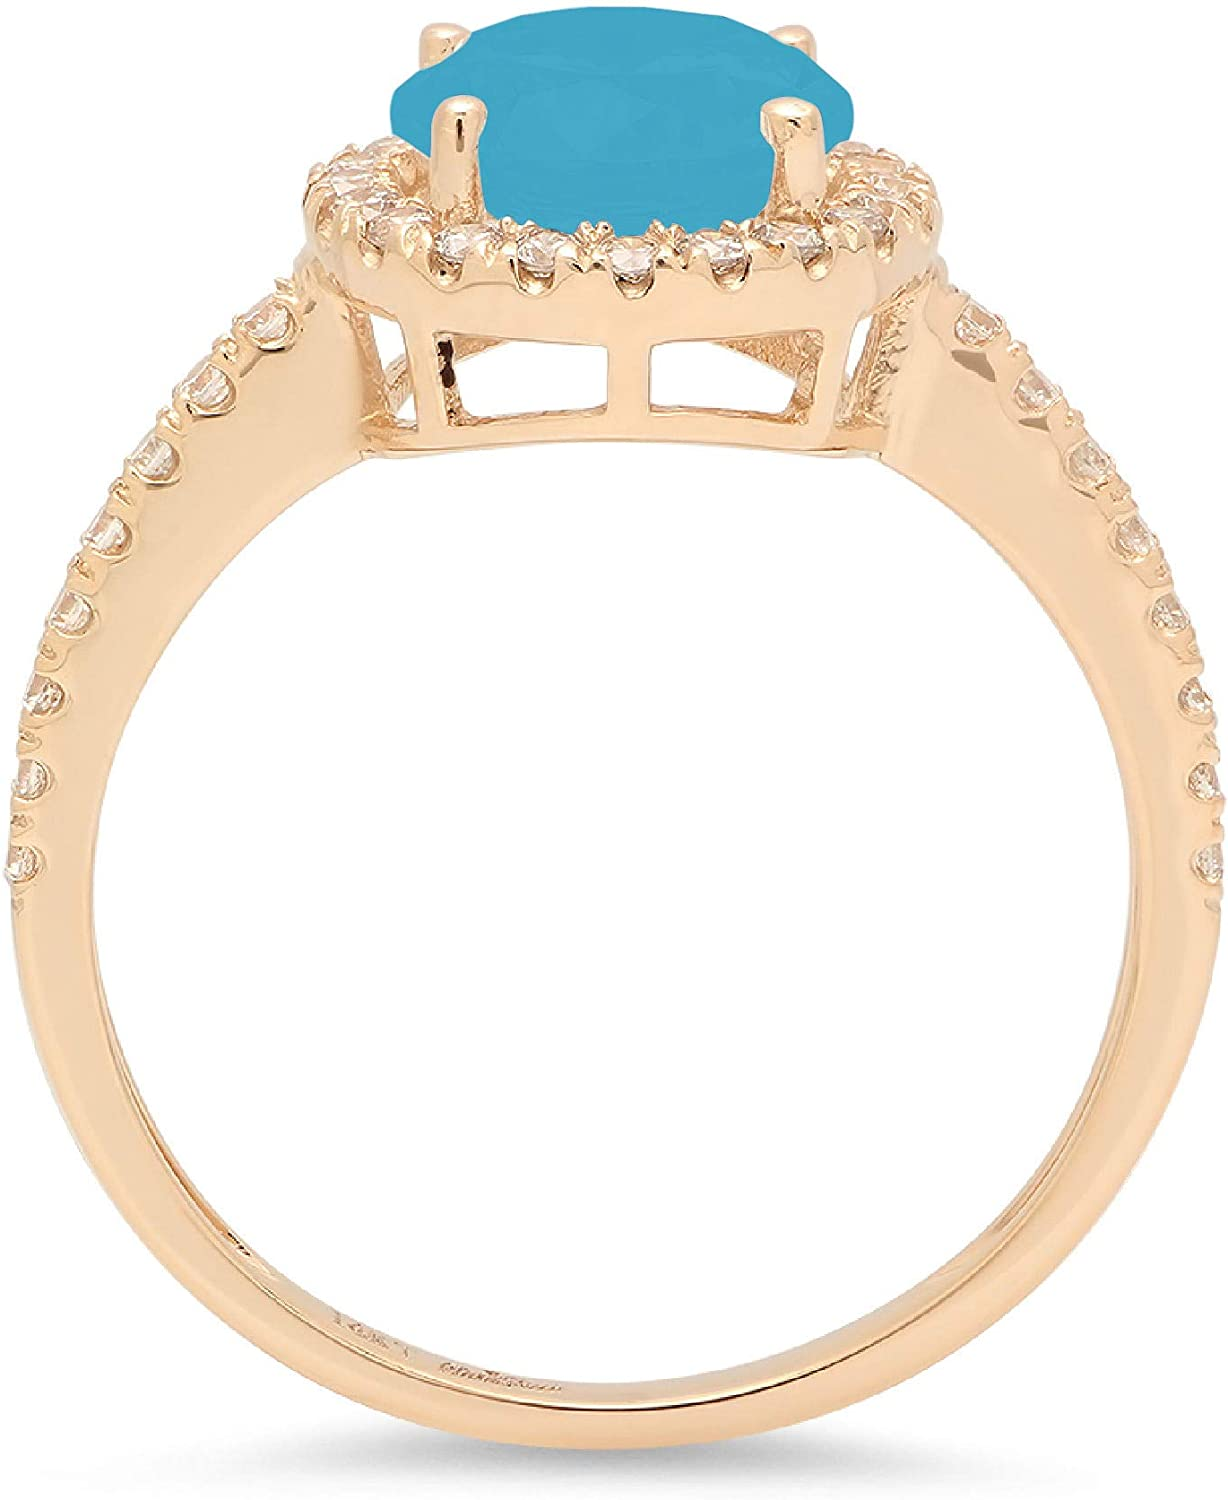 Clara Pucci 1.95 Brilliant Round Cut Solitaire halo Stunning Genuine Flawless Simulated Turquoise Gem Designer Modern Accent Ring Solid 18K Yellow Gold